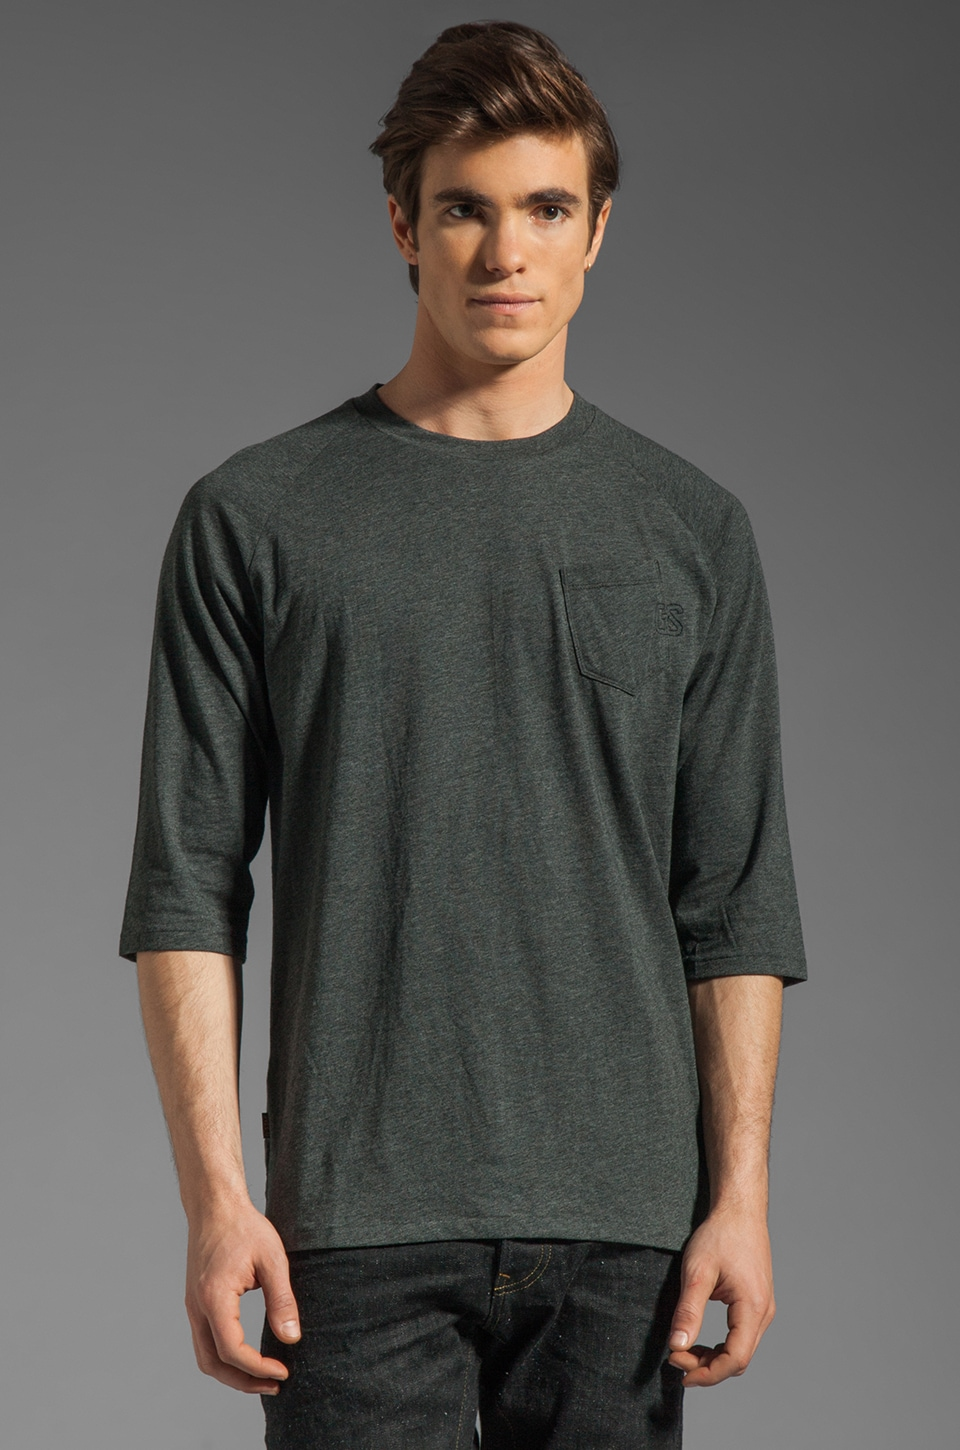 G-Star Ace 1/2 Sleeve Tee in Raven